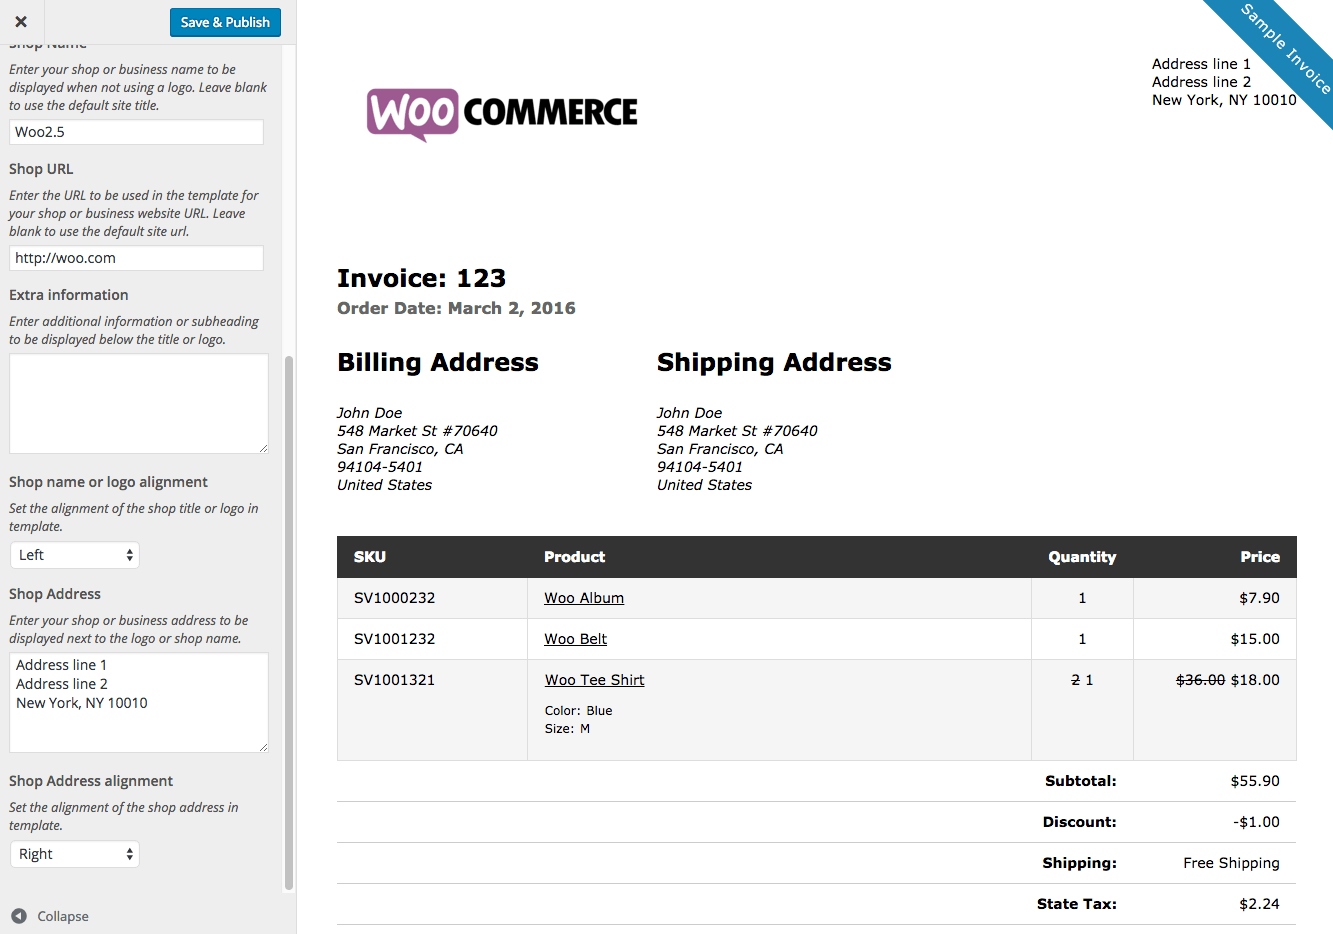 Musclebuildingtipsus  Gorgeous Print Invoices Amp Packing Lists  Woocommerce With Exciting Woocommerce Print Invoices  Packing Lists Customizer With Agreeable Receipt Management App Also Return Items To Walmart Without Receipt In Addition Receipt Images And In Kind Donation Receipt As Well As Taxi Cab Receipts Printable Additionally Depositary Receipt From Woocommercecom With Musclebuildingtipsus  Exciting Print Invoices Amp Packing Lists  Woocommerce With Agreeable Woocommerce Print Invoices  Packing Lists Customizer And Gorgeous Receipt Management App Also Return Items To Walmart Without Receipt In Addition Receipt Images From Woocommercecom